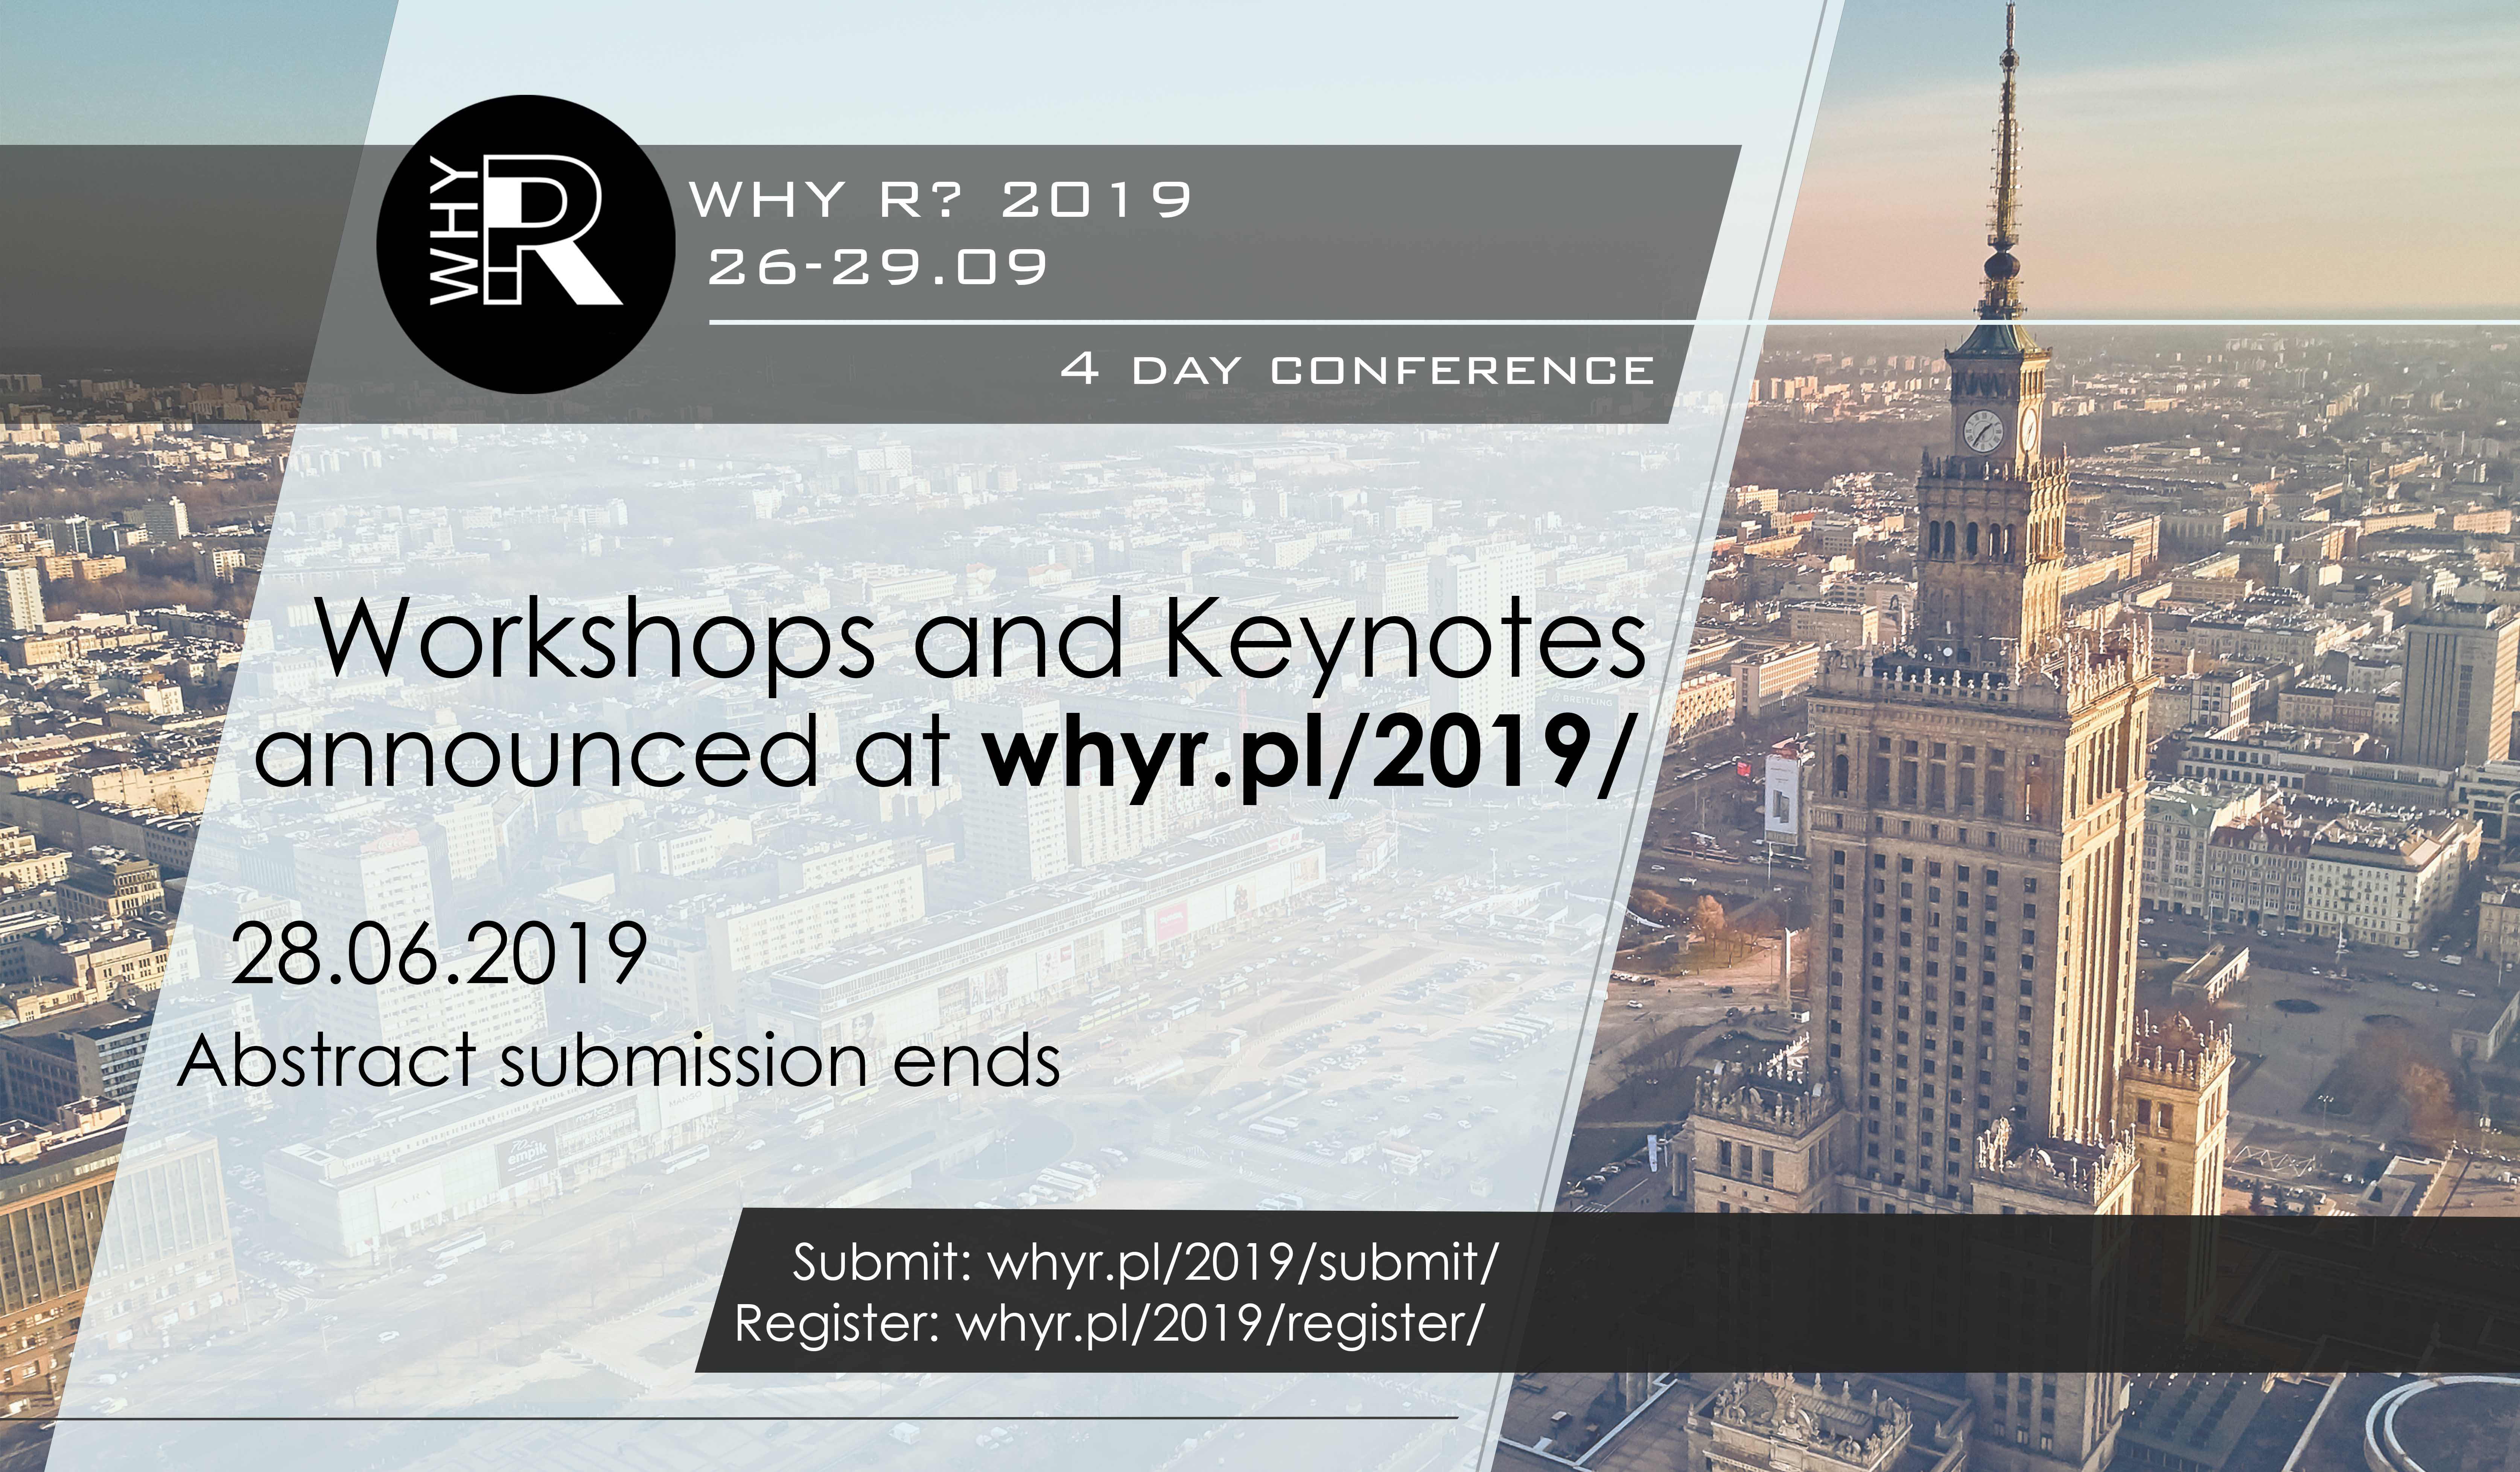 Why R? 2019 Conference - Keynotes and Workshops announced